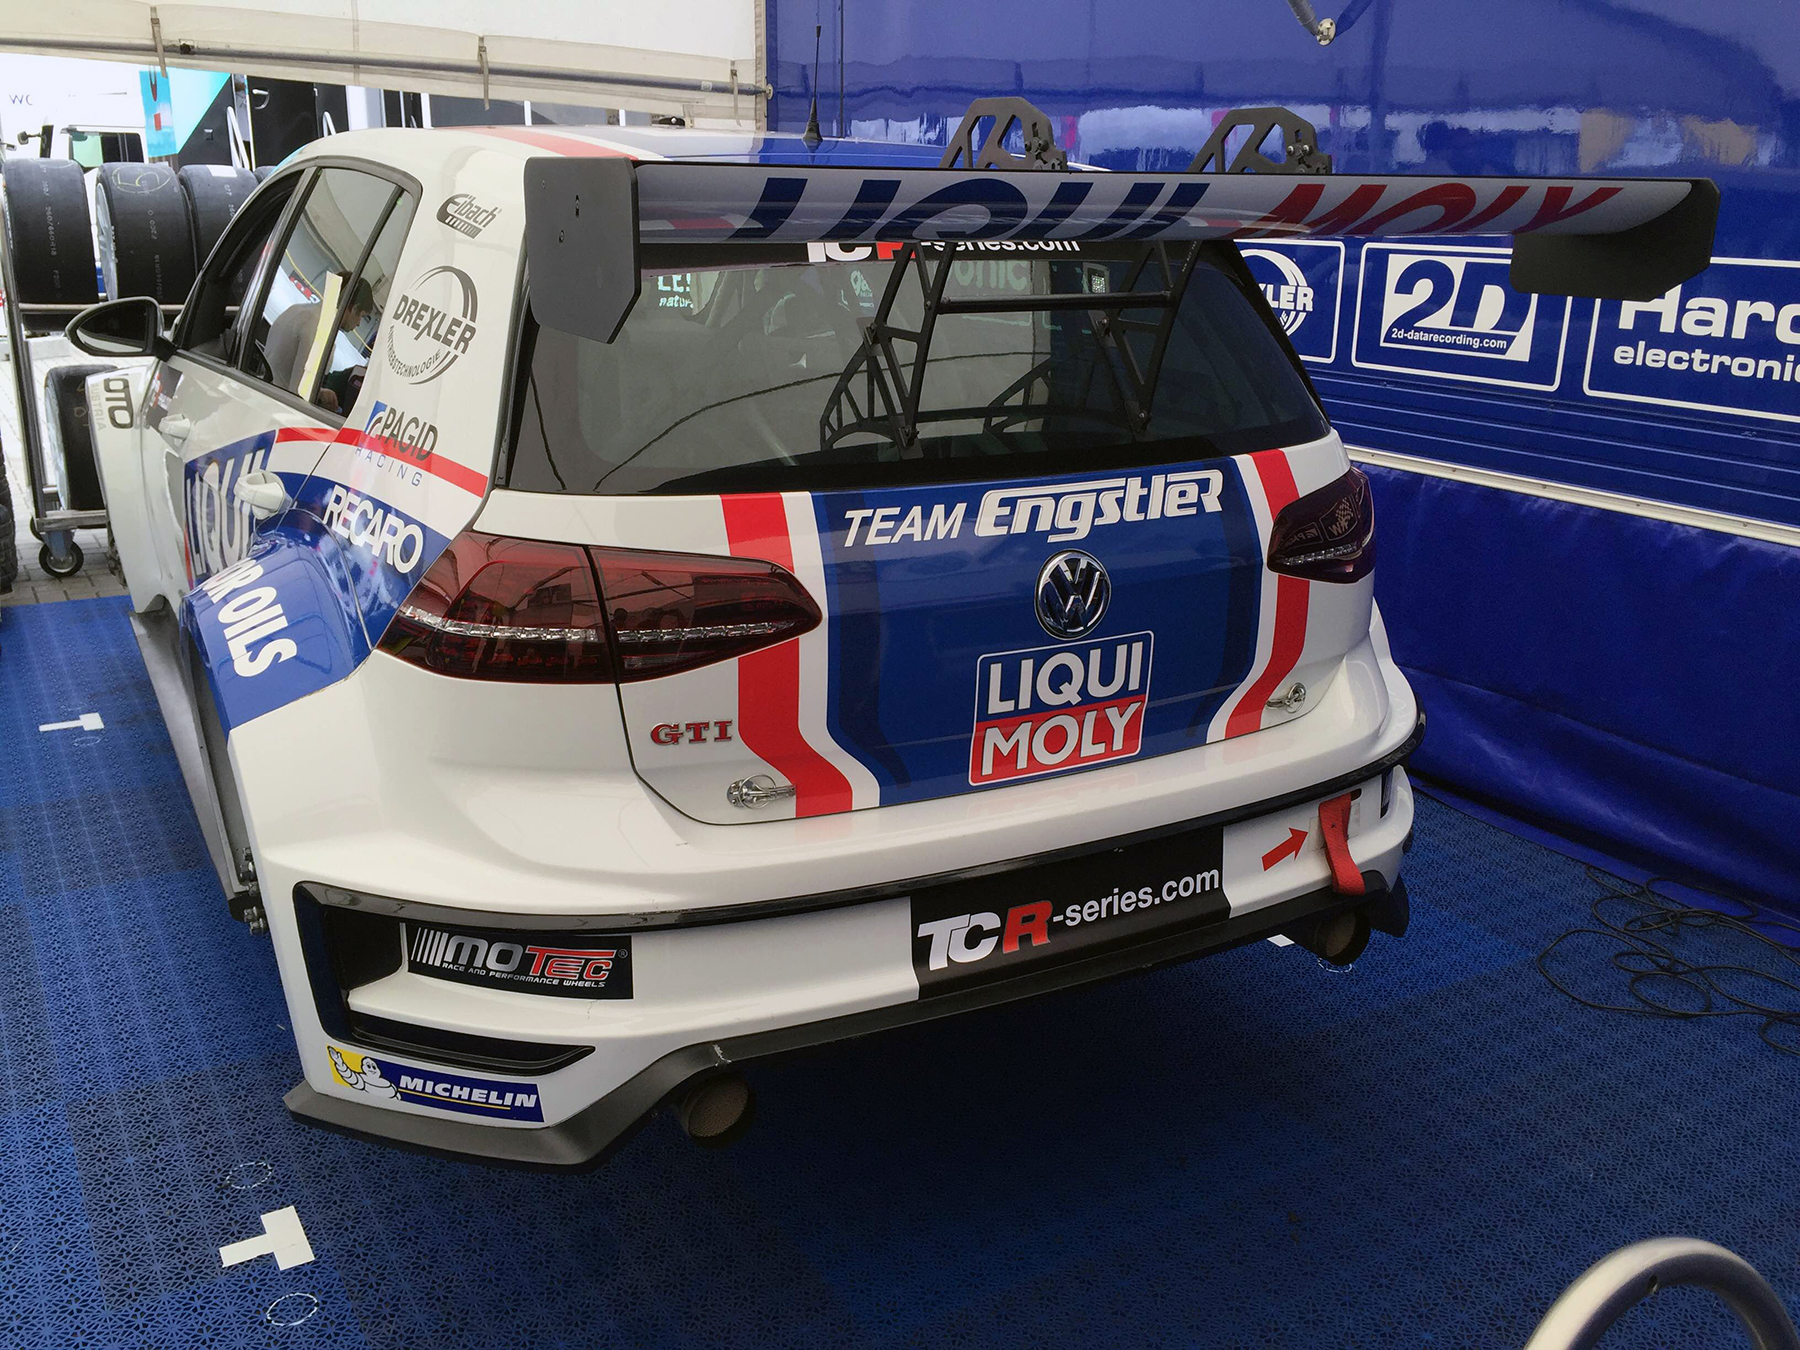 Liqui Moly Team Engstler GTI TCR Race Car